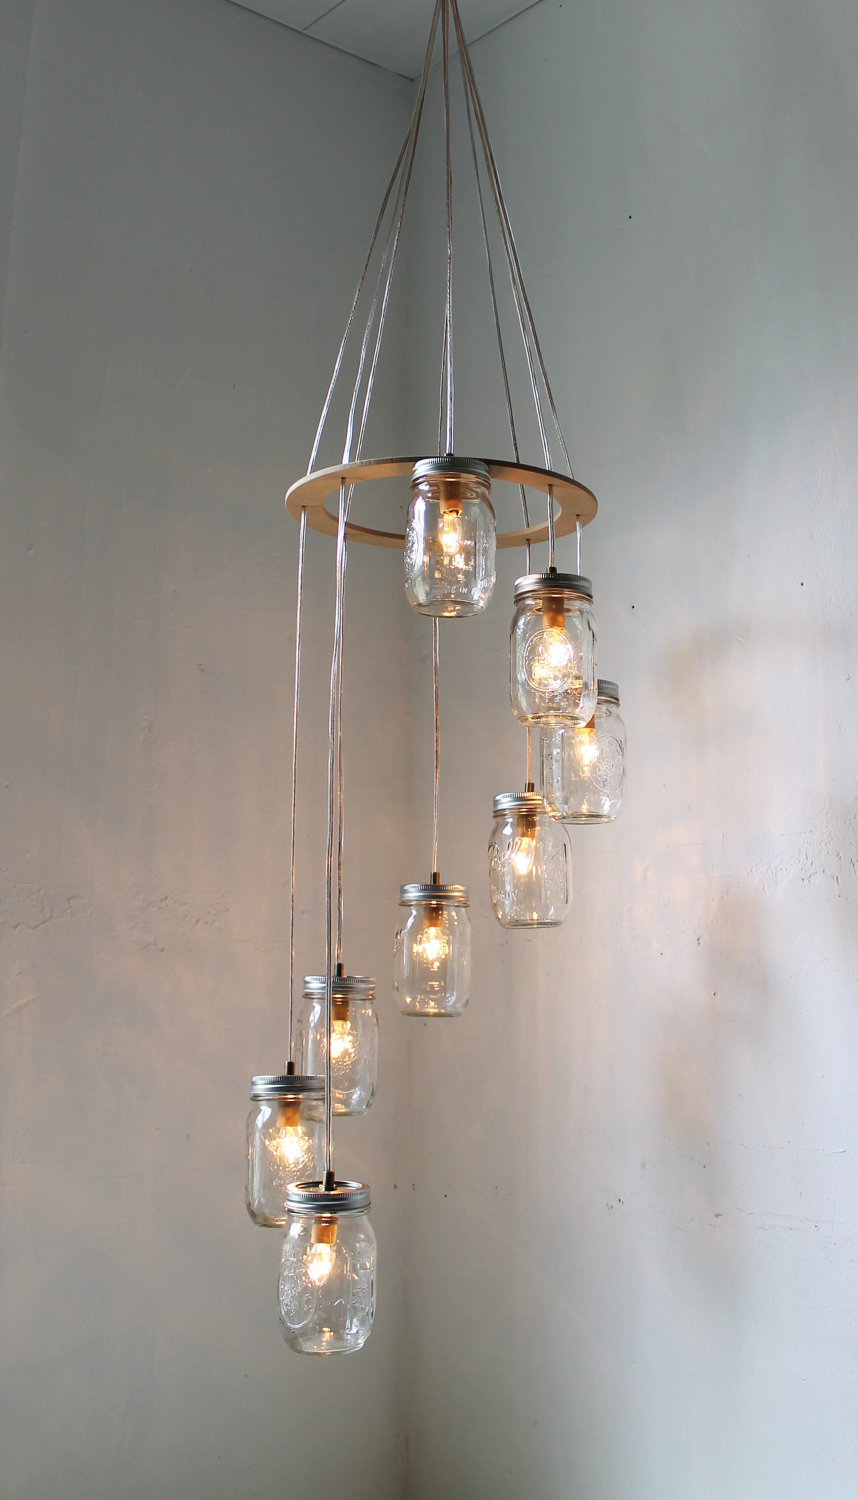 Hanging Ceiling Lights That Plug In – Outdoor Plug in Chandelier